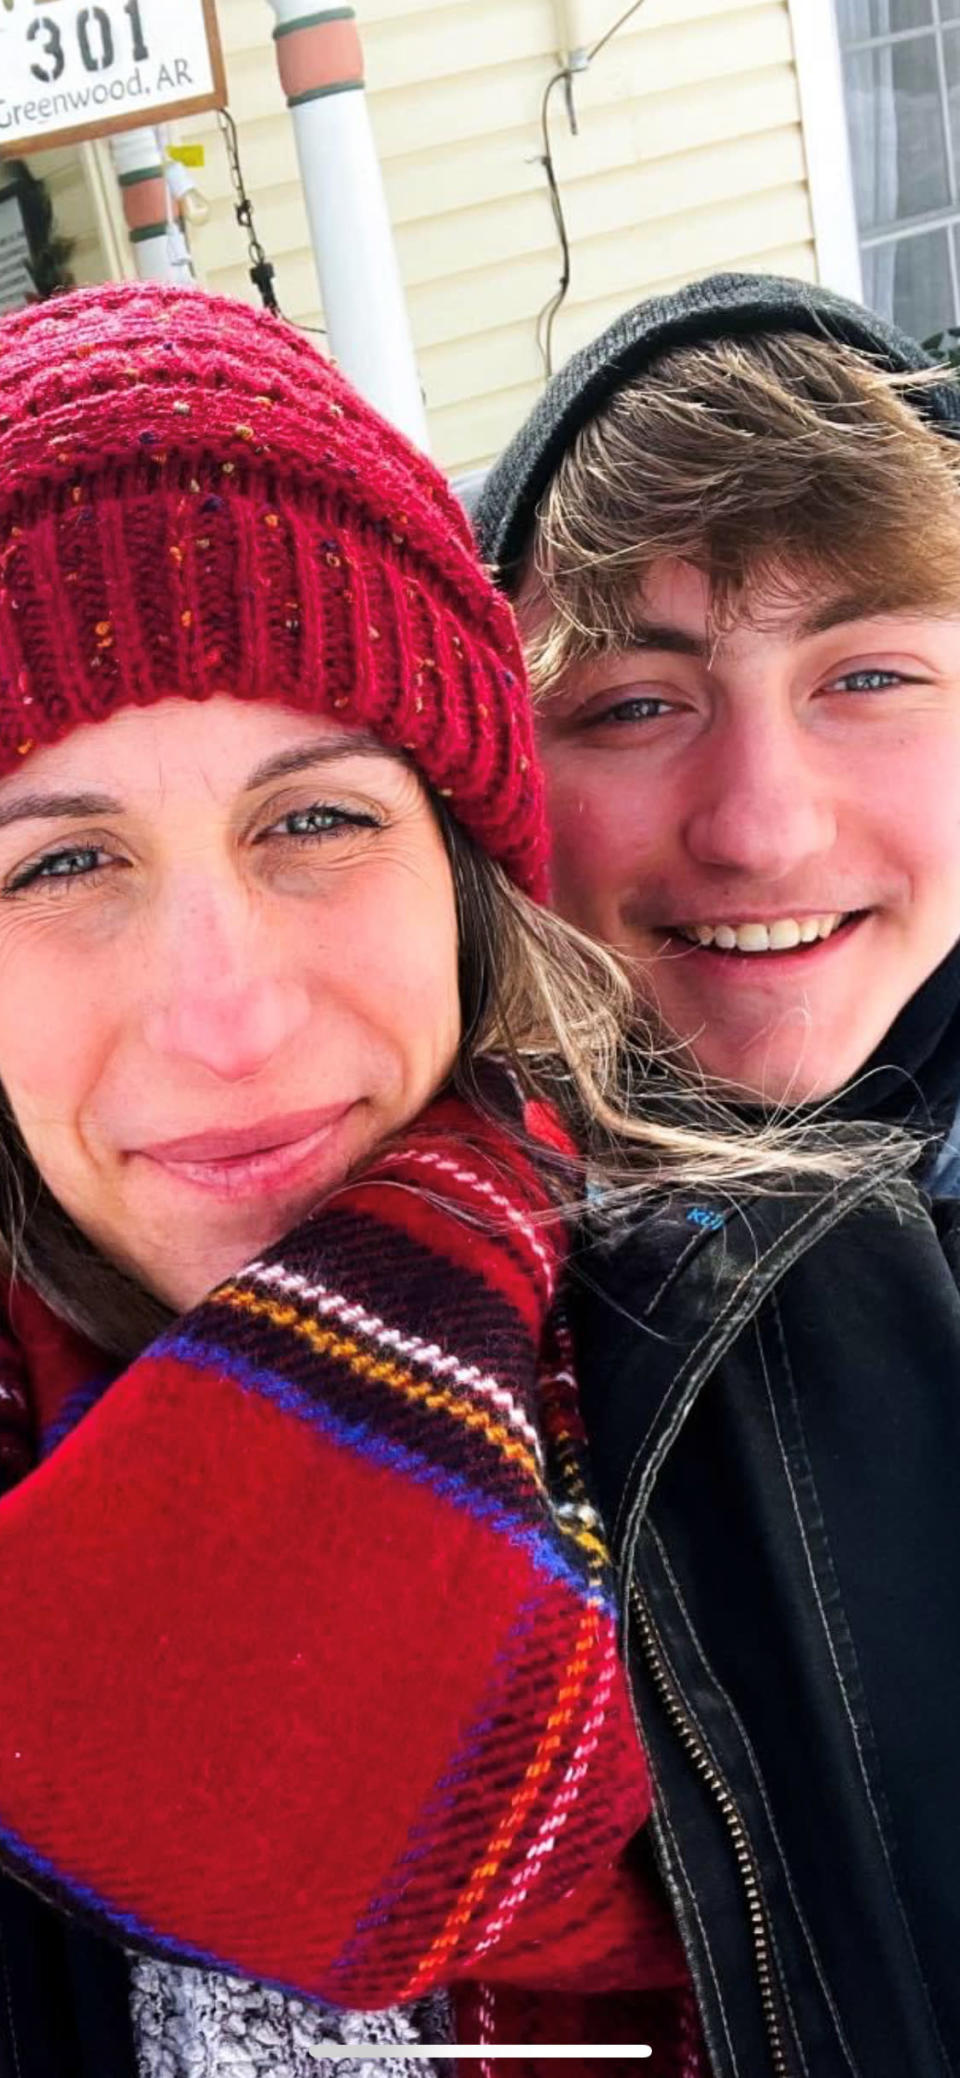 FILE - Dylan Brandt, 15, and his mom, Joanna Brandt, pose for a photo in Greenwood, Arkansas on Feb. 18, 2021. Dylan is one of hundreds of transgender youth in Arkansas who could have their hormone therapy cut off under a new law banning gender confirming treatments for minors. On Tuesday, May 25, 2021, the American Civil Liberties Union asked a federal judge to strike down a new Arkansas law that made the state the first to ban gender confirming treatments or surgery for transgender youth. (Joanna Brandt via AP, File)